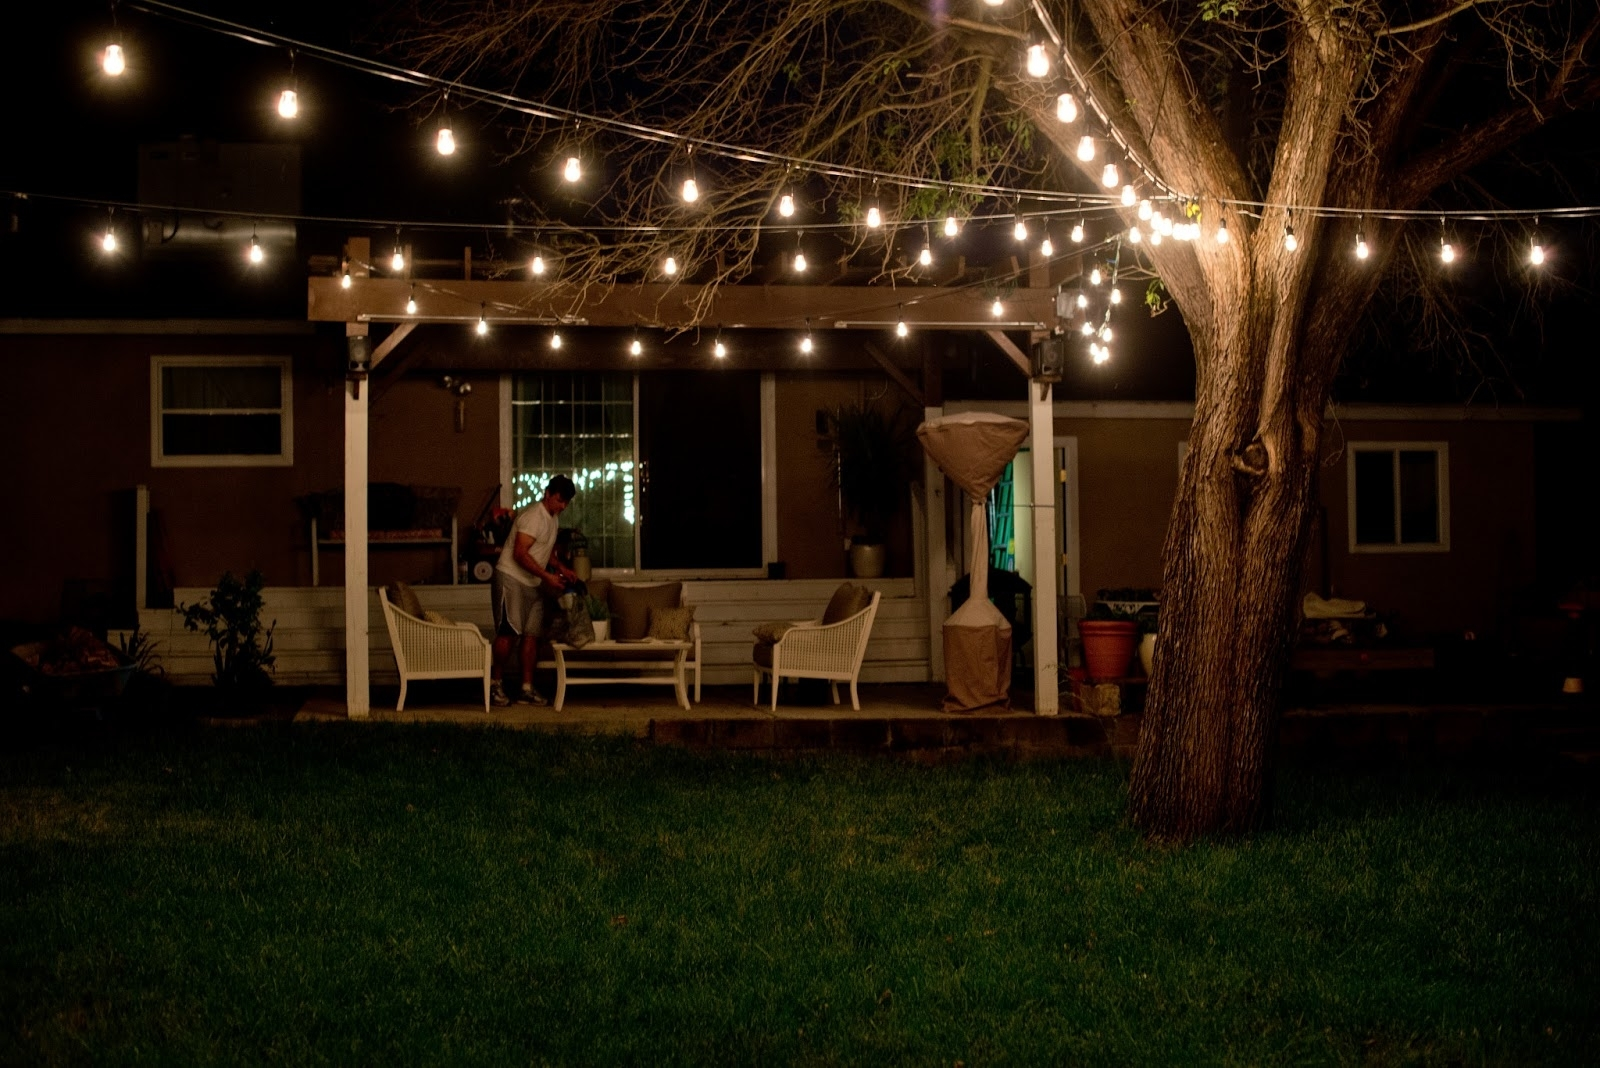 Outdoor Hanging Lights String – Coryc Throughout Outdoor Hanging Lights On String (View 9 of 15)